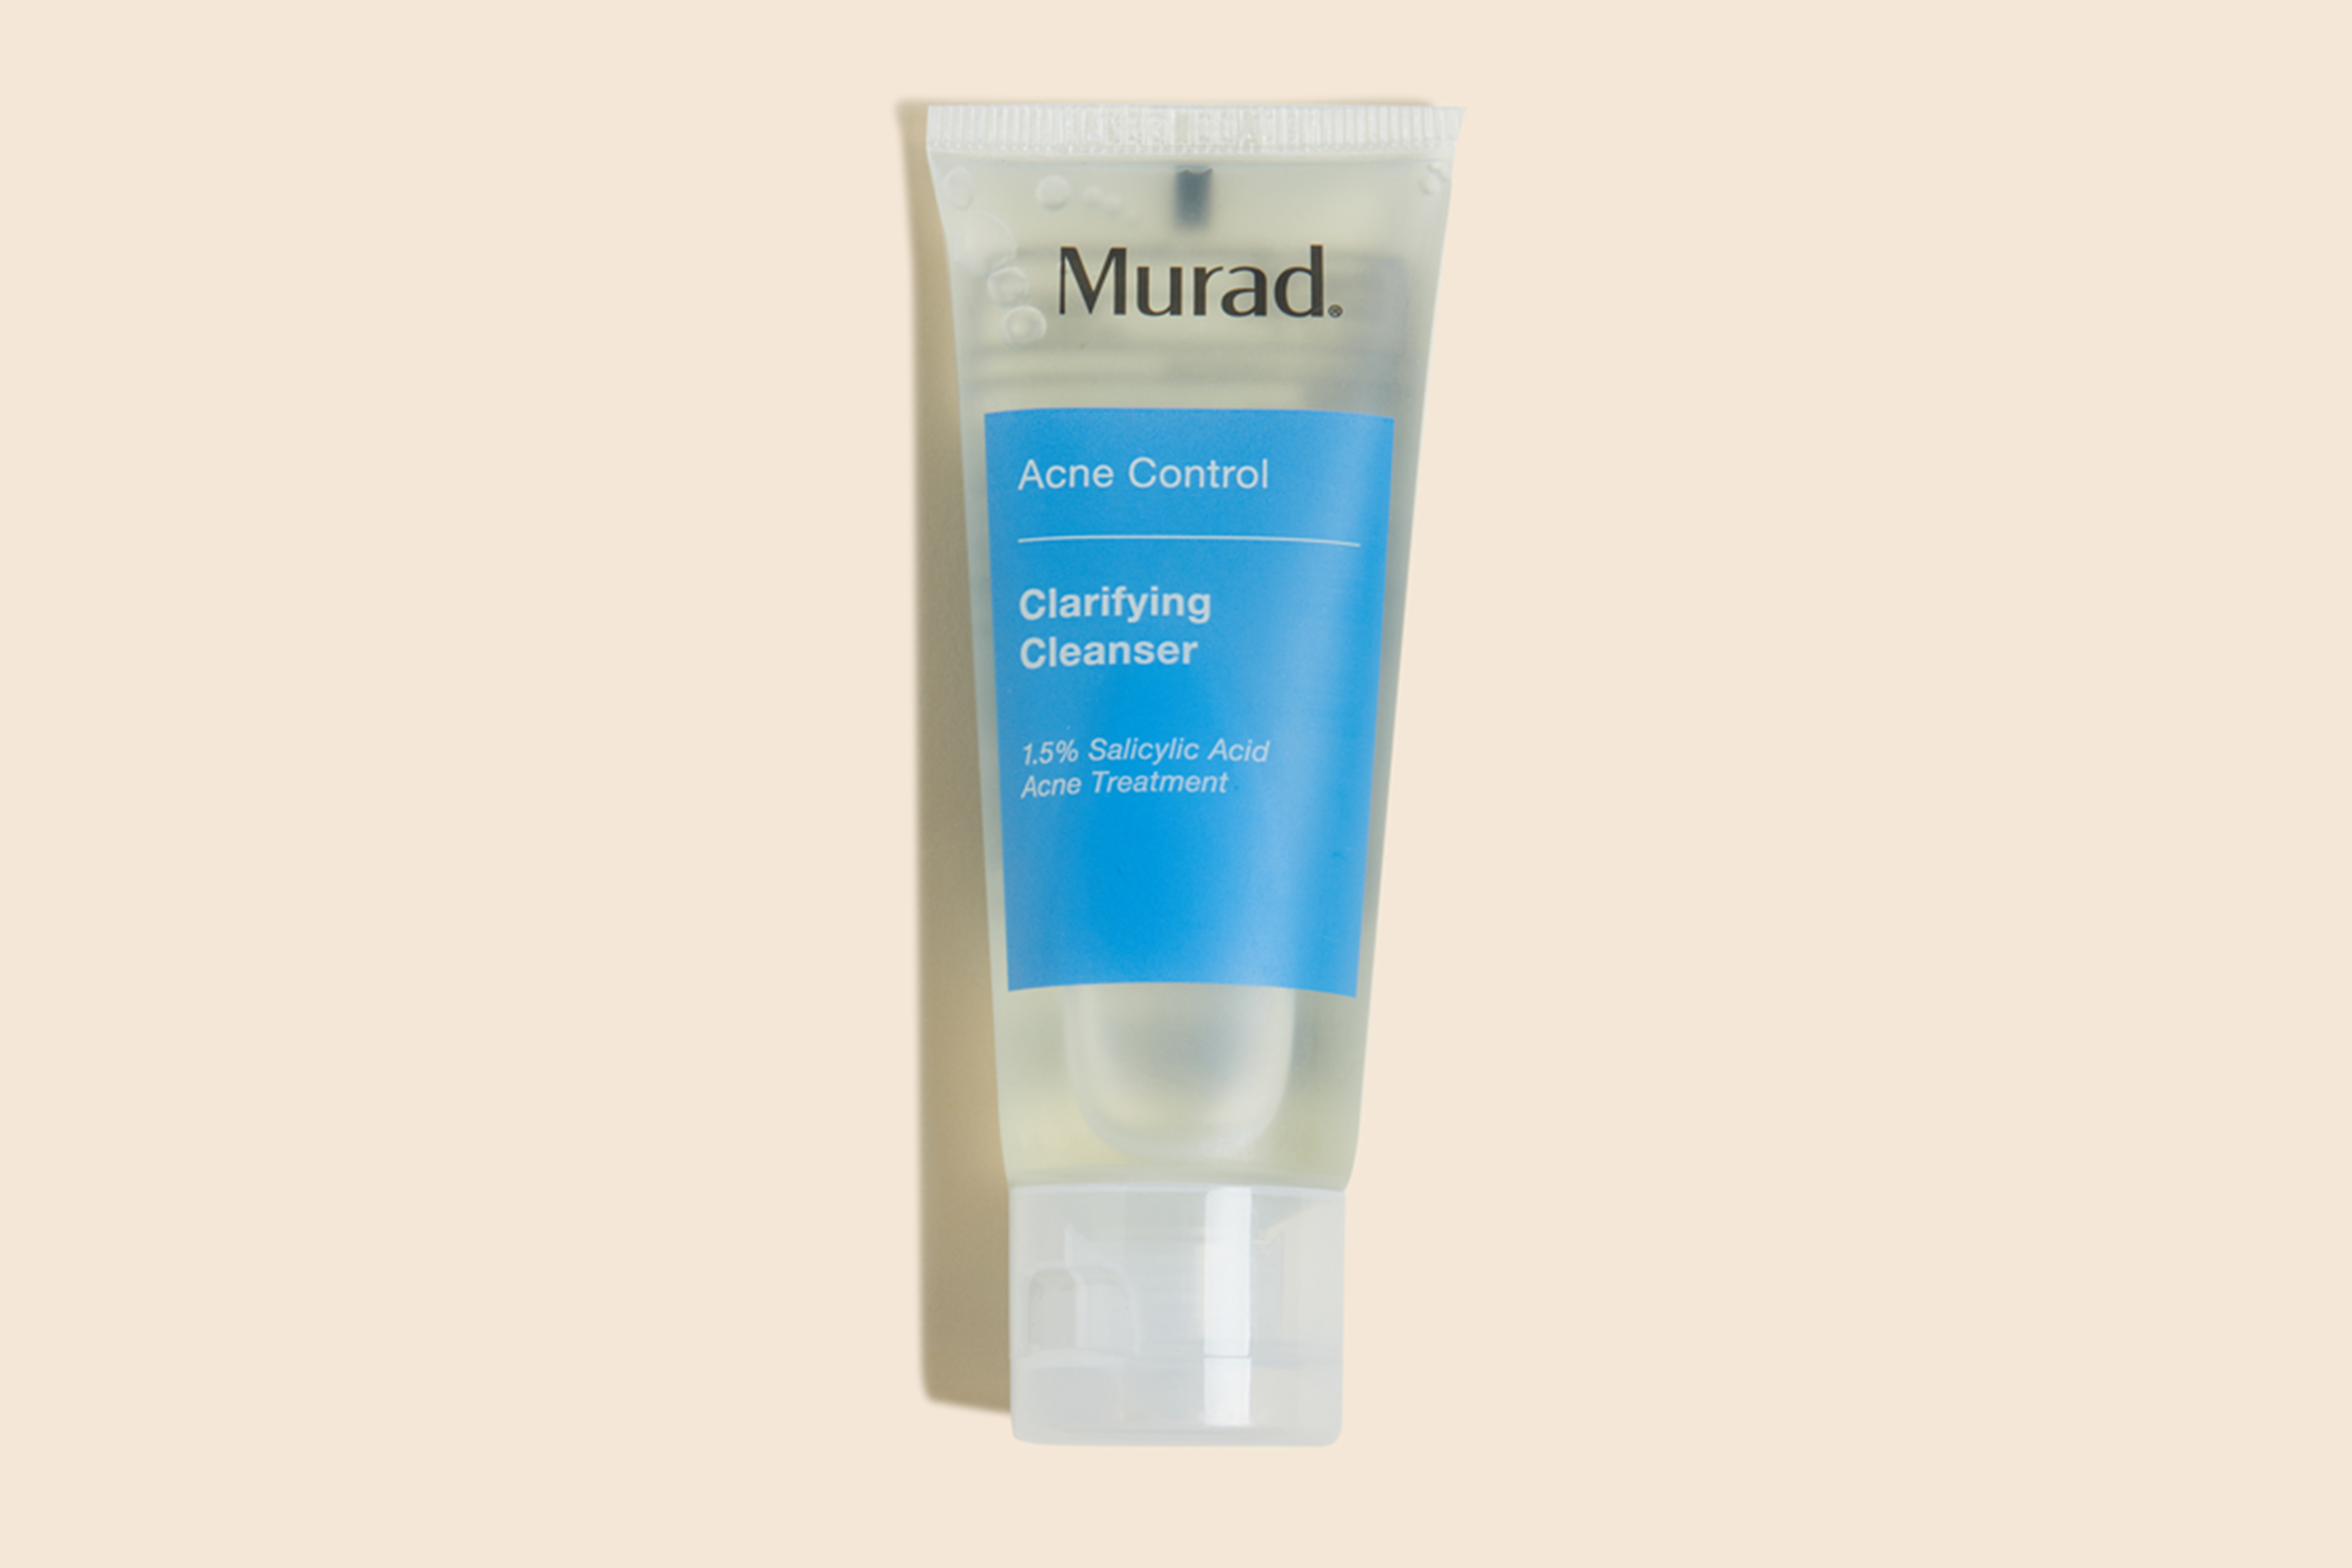 0518-Points-Murad-Clarifying-Cleanser_1163